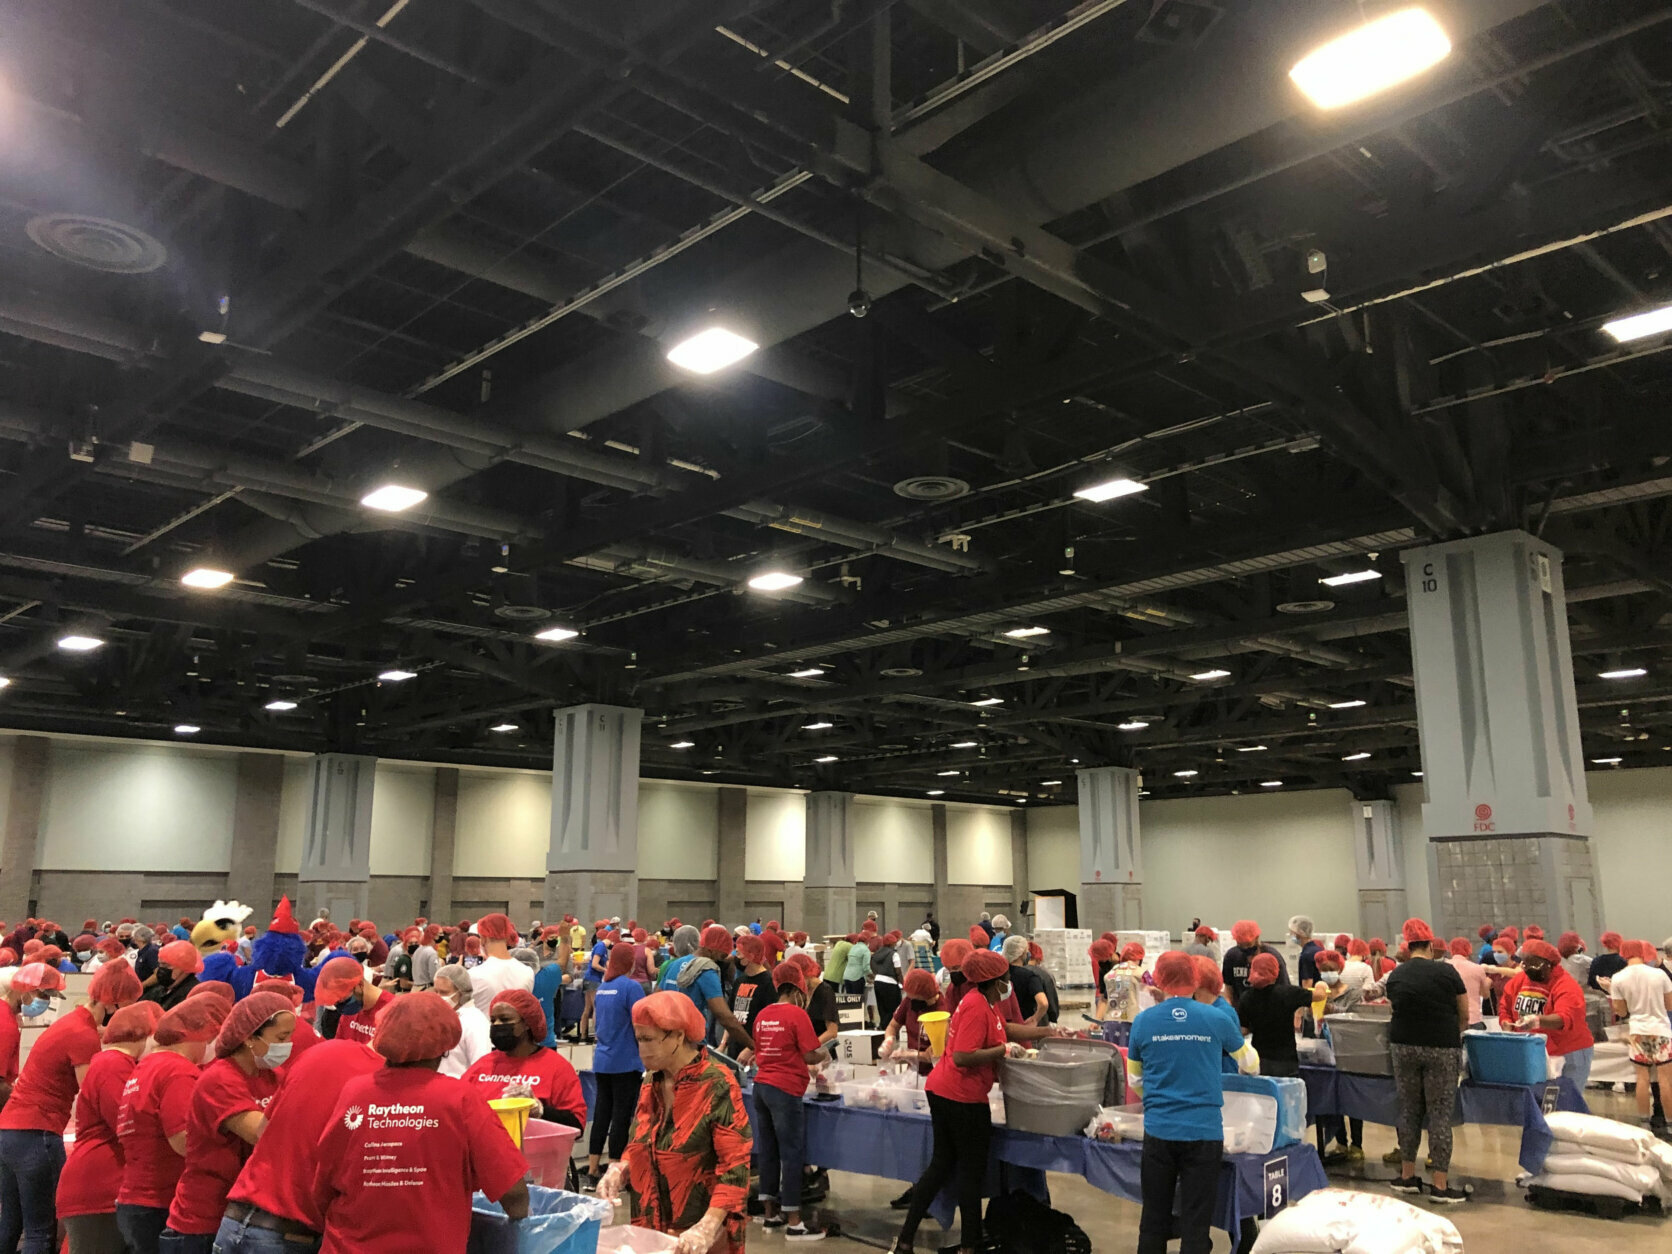 People from fraternities and sororities and community and business groups were among up to 700 volunteers working in shifts to prepare meals for area food banks. (WTOP/Dick Uliano)